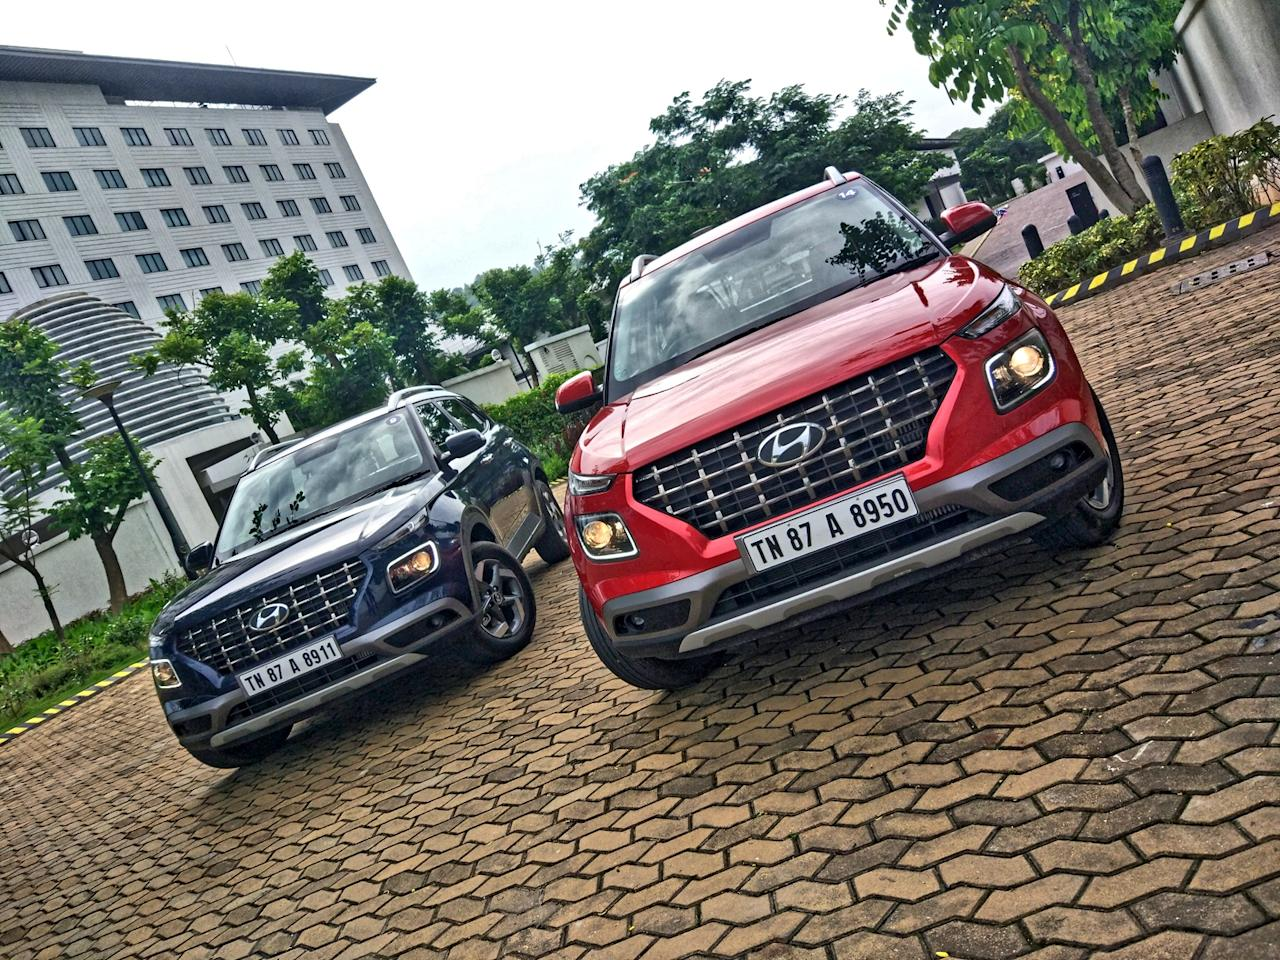 <strong>Hyundai</strong>- Maintaining its position in the Indian market has been tough but Hyundai has managed it and year on year it has actually managed a growth at 2 percent (43.7k to 44.6k units per month). This is thanks to its aggressive product launch strategy with no less than 3 launches so far and more coming soon.